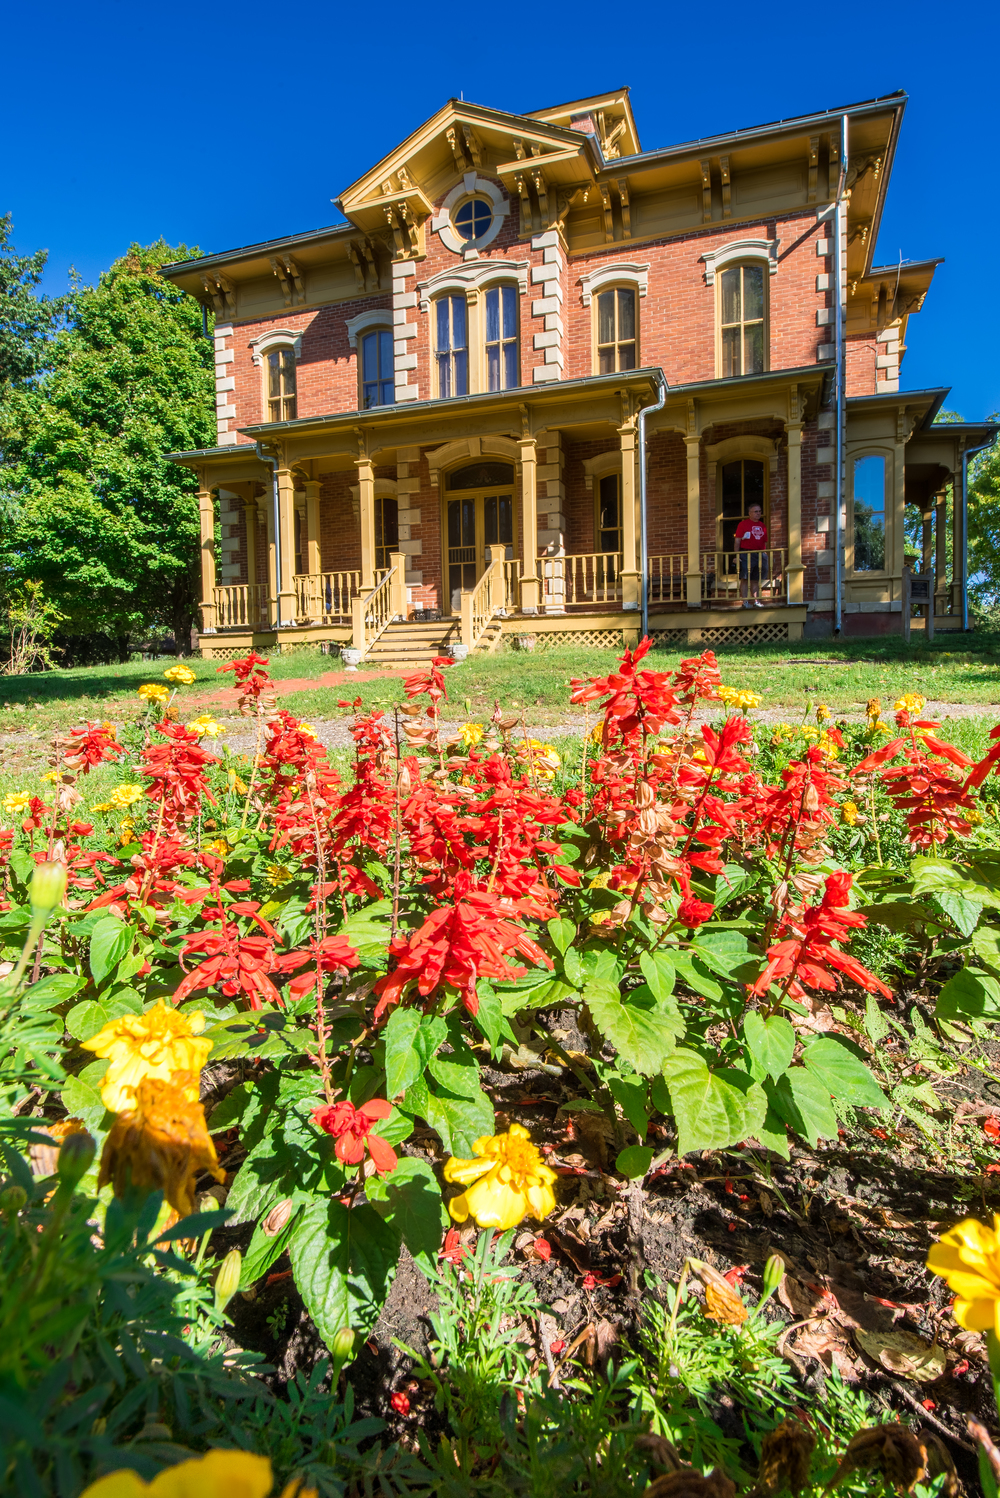 Outside the mansion shot from the garden with the bright red and yellow flowers.